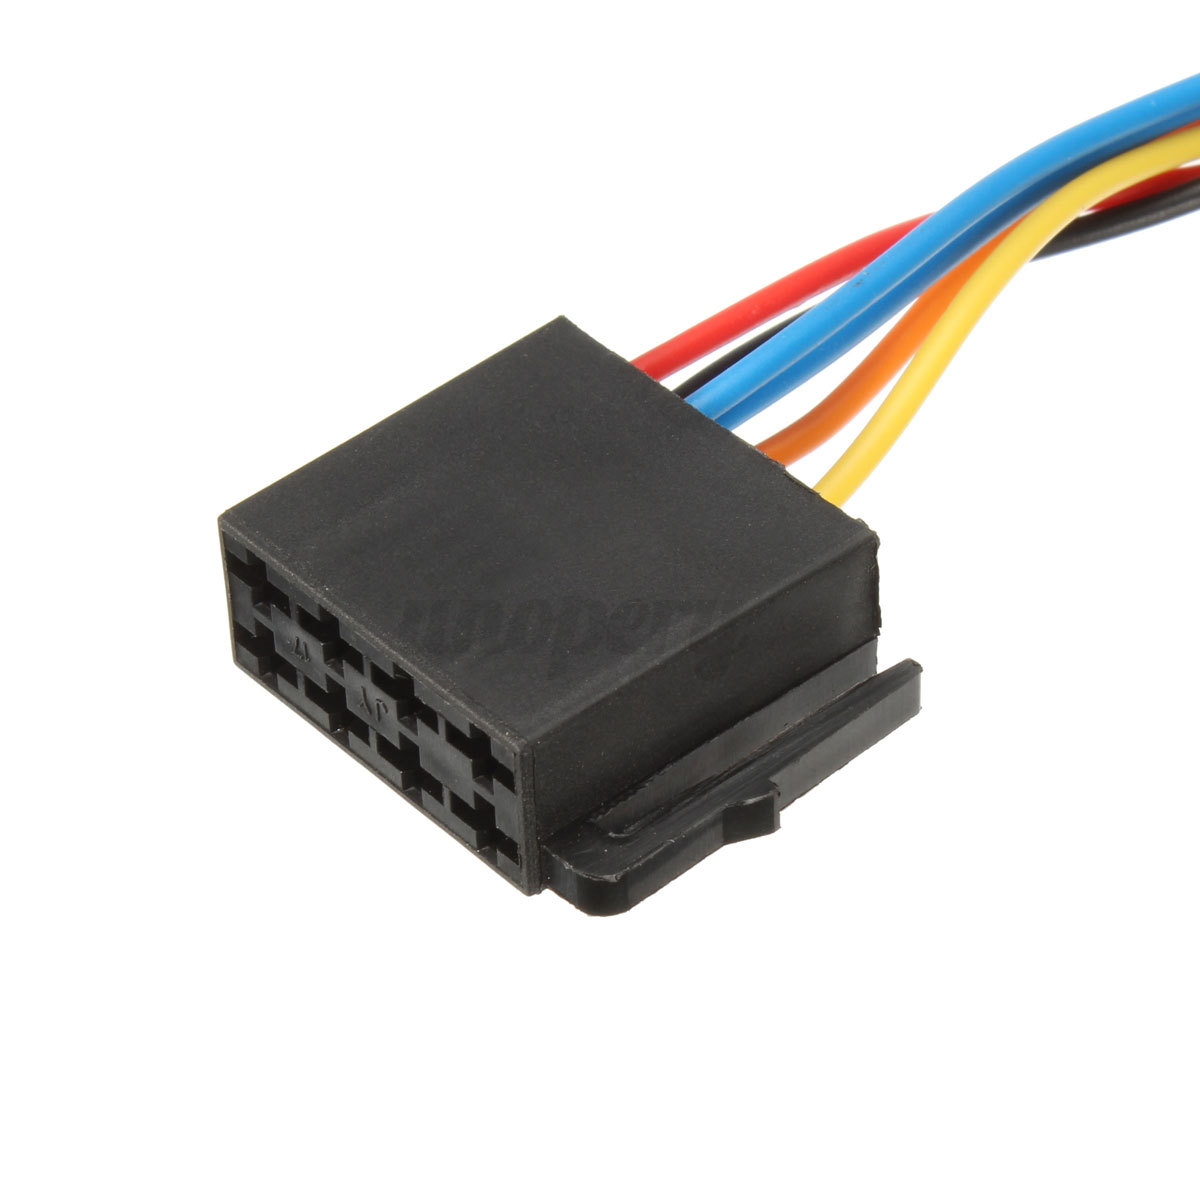 hight resolution of  1997 toyotum corolla radio iso car radio stereo harness adapter wiring connector for